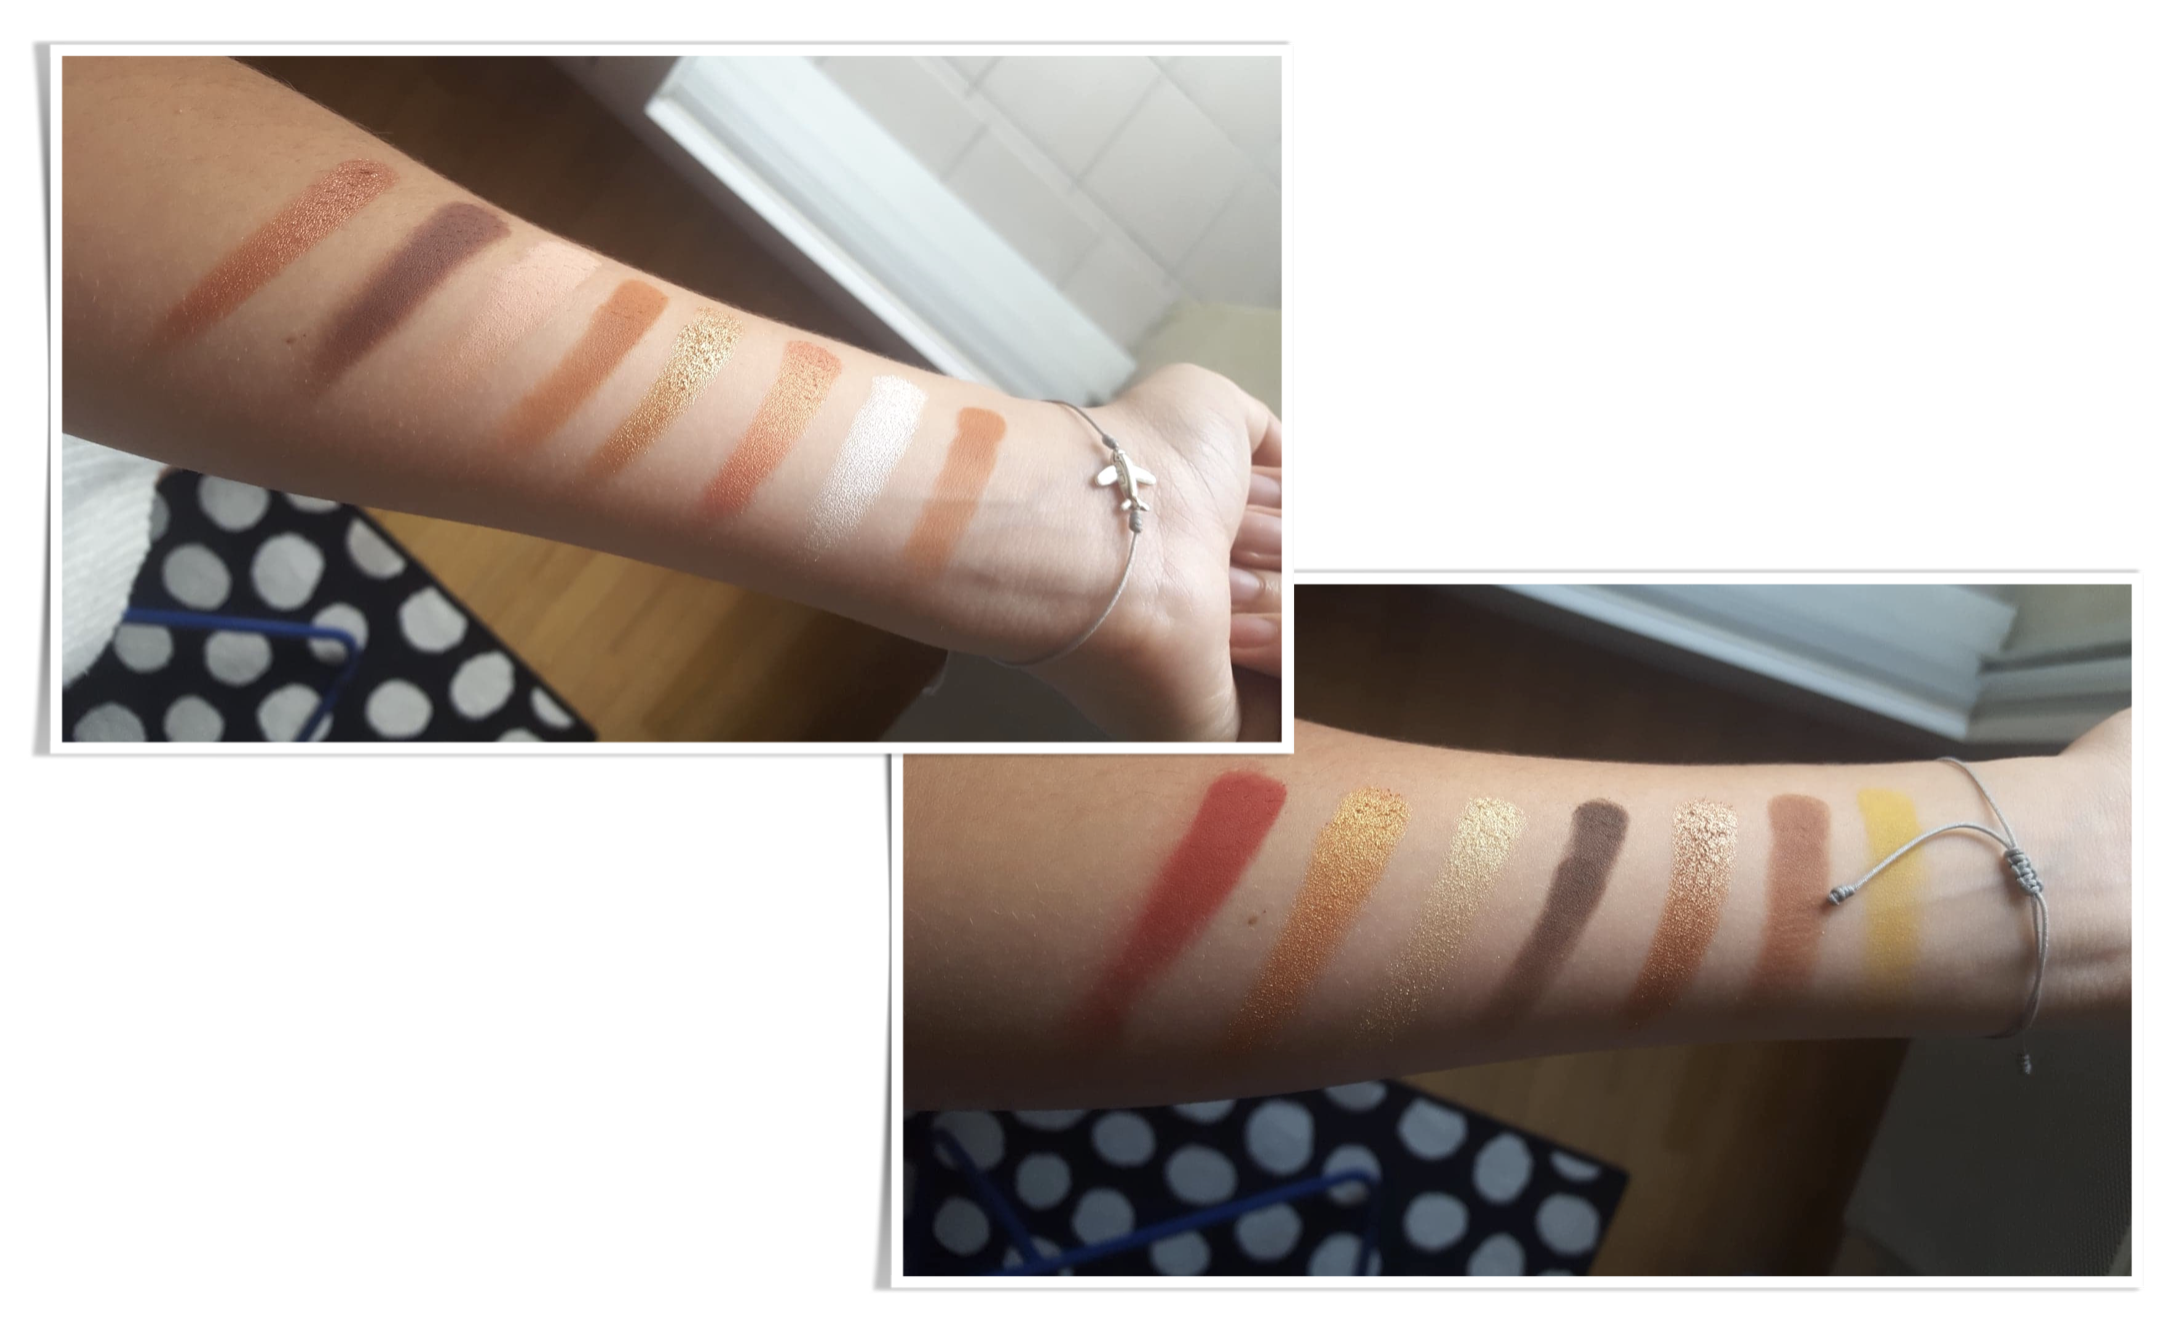 Sunset Palette Natasha Denona swatches